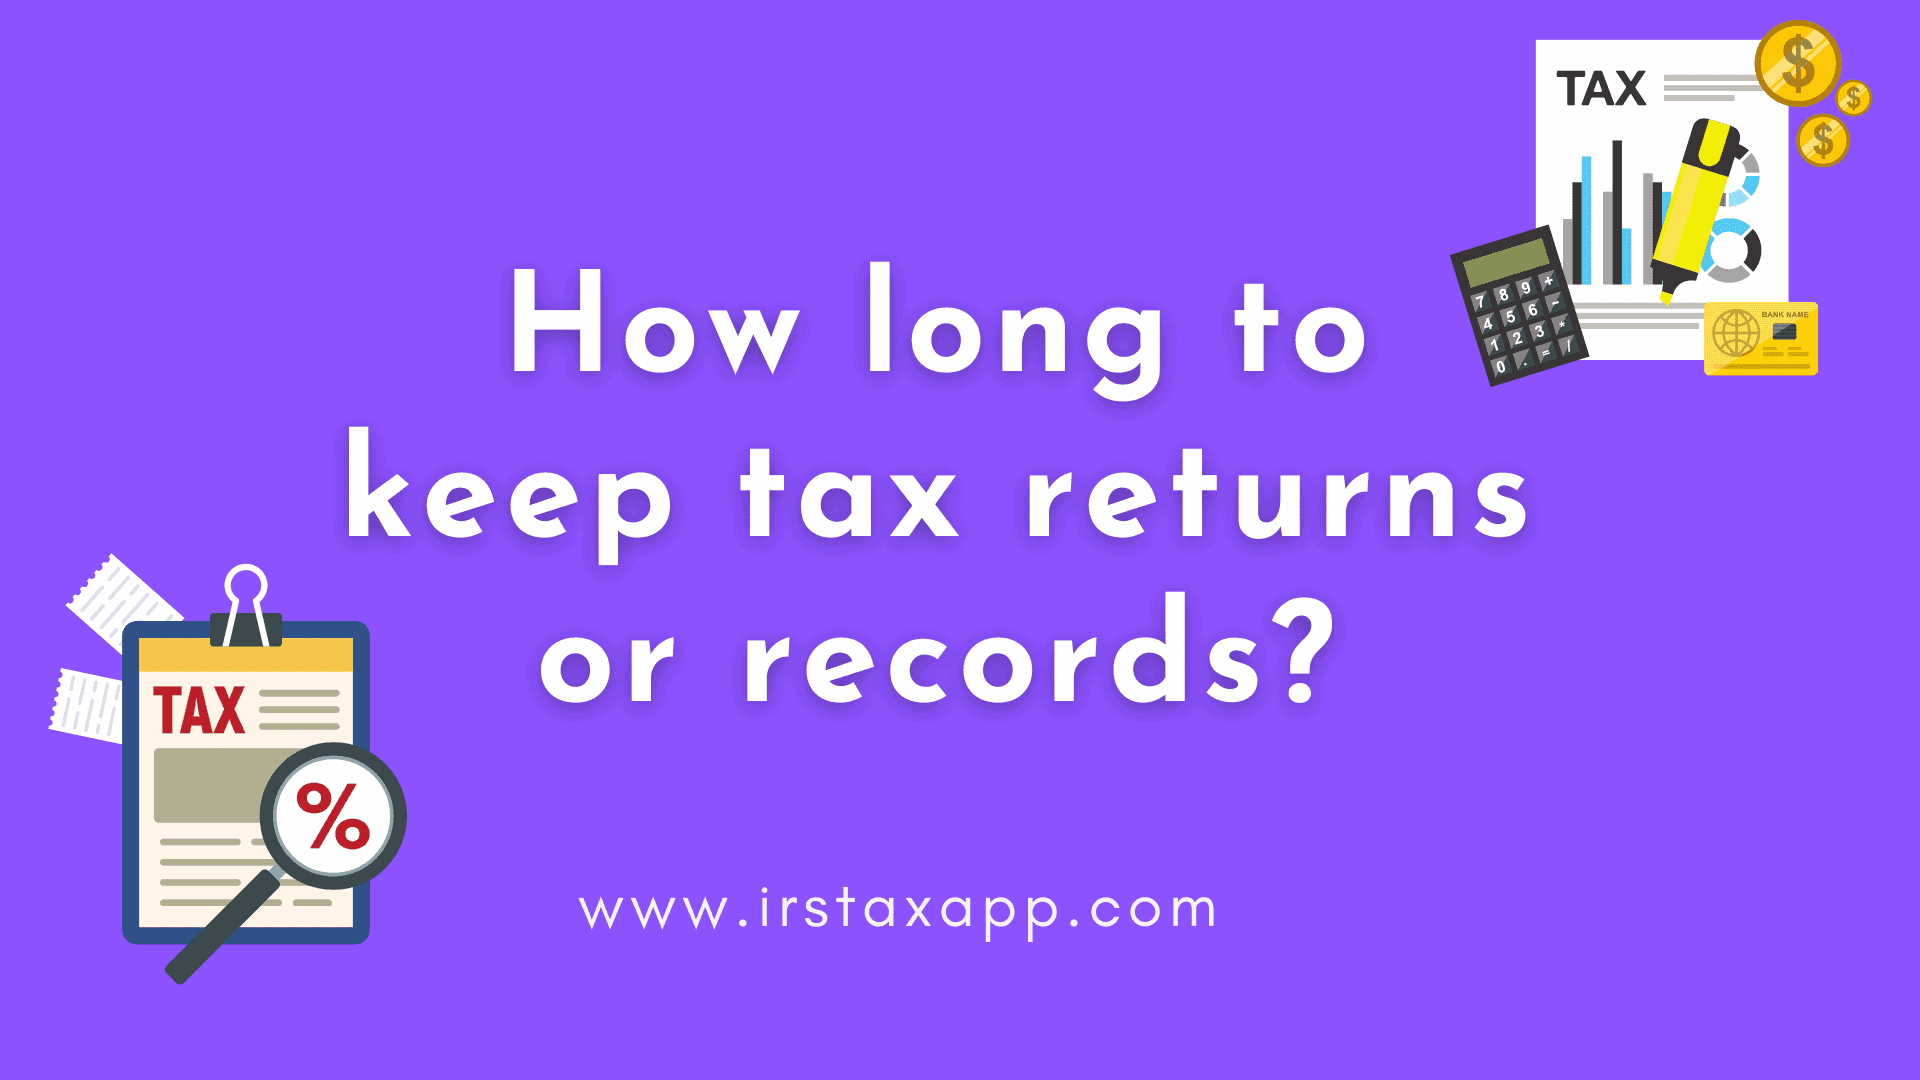 How-long-to-keep-tax-returns-or-records_